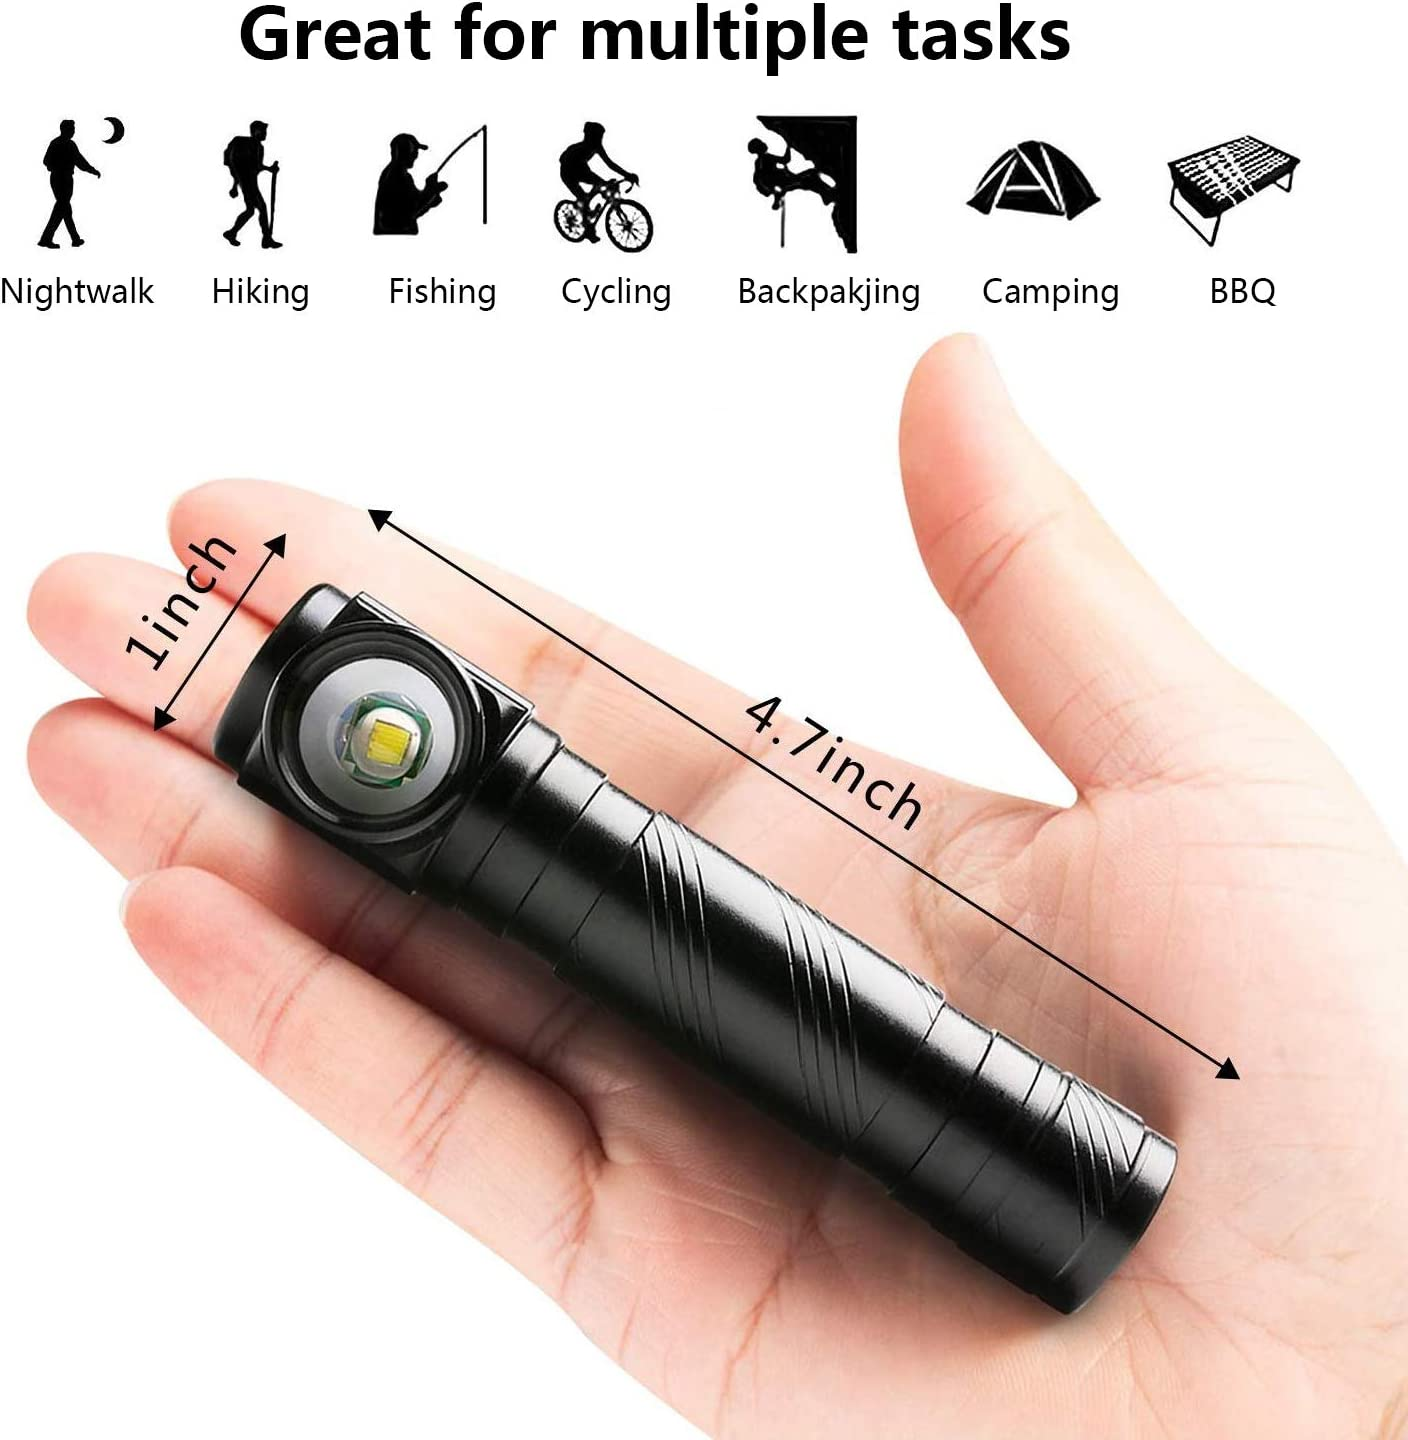 USB Rechargeable Super Bright Pocket-Sized Mini Flashlight IPX65 Water Resistant Zoomable Magnetic Emergency Right Angle Flashlight for Outdoor Camping,Hiking and Cycling Black-1pc